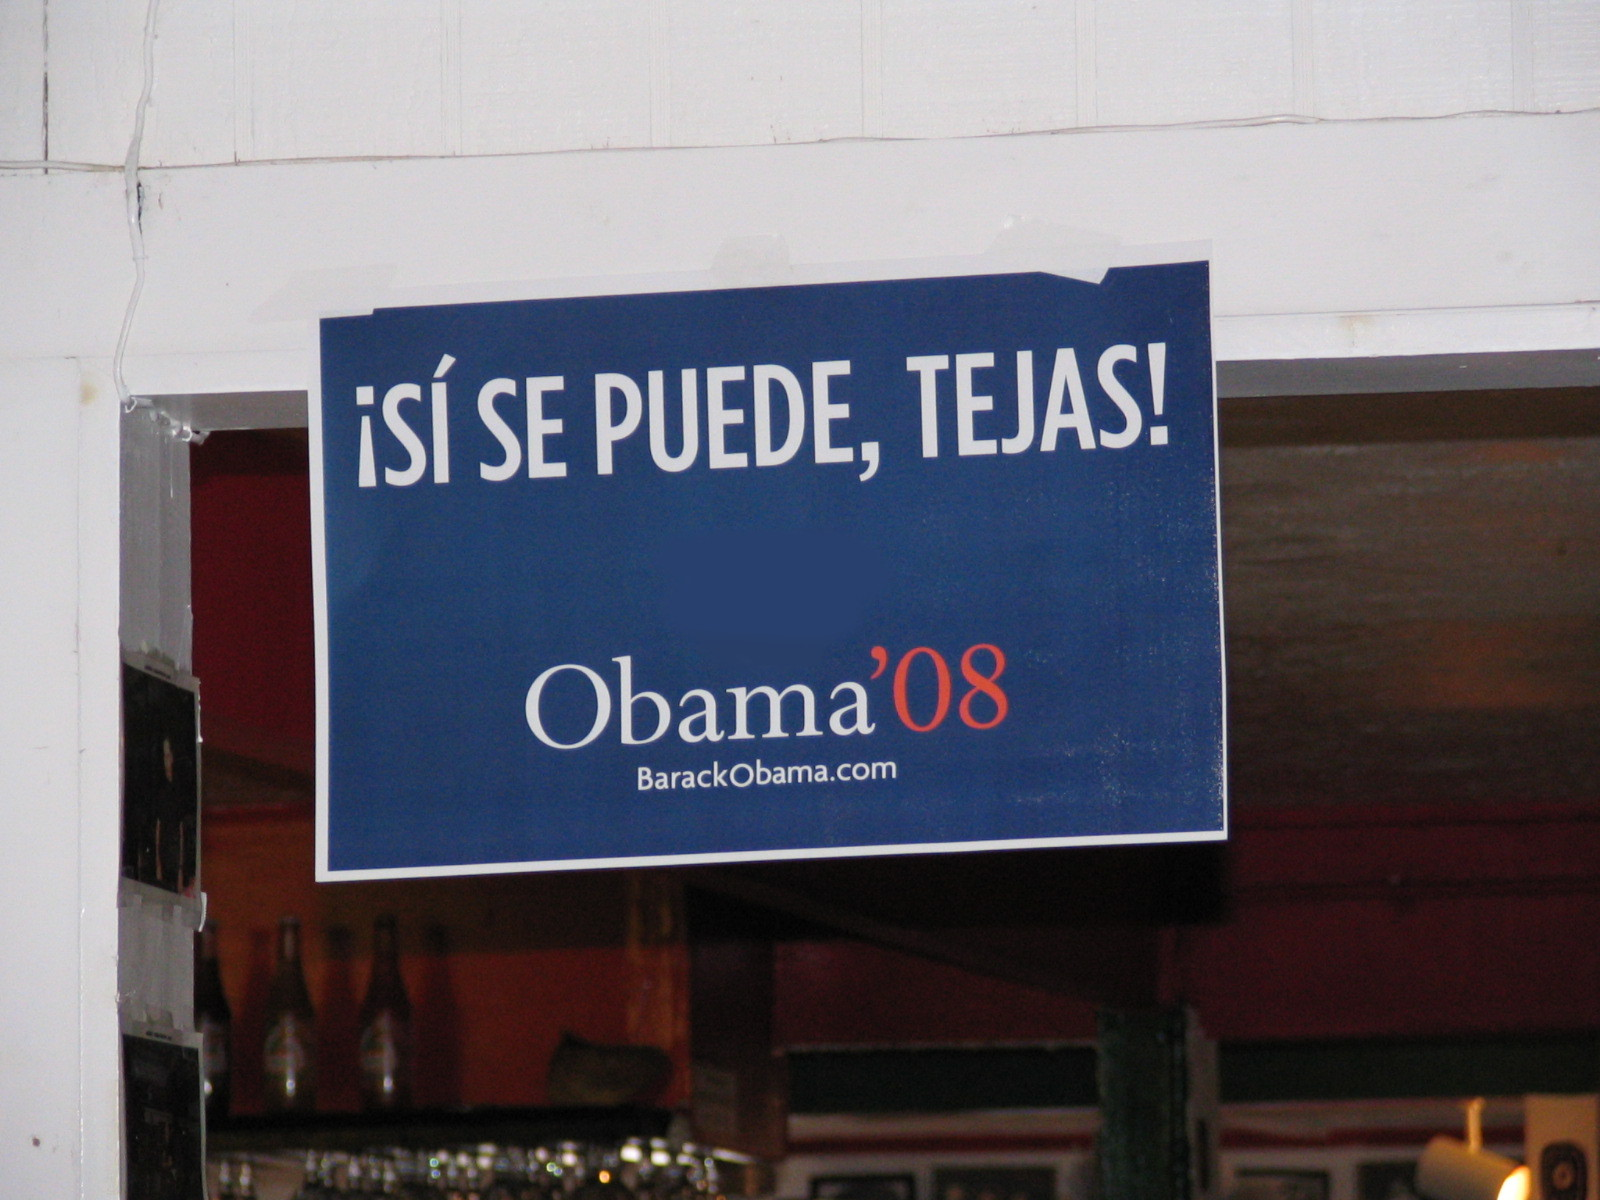 Worksheet Si Se Puede Means filesi se puede tejas obama jpg wikimedia commons jpg